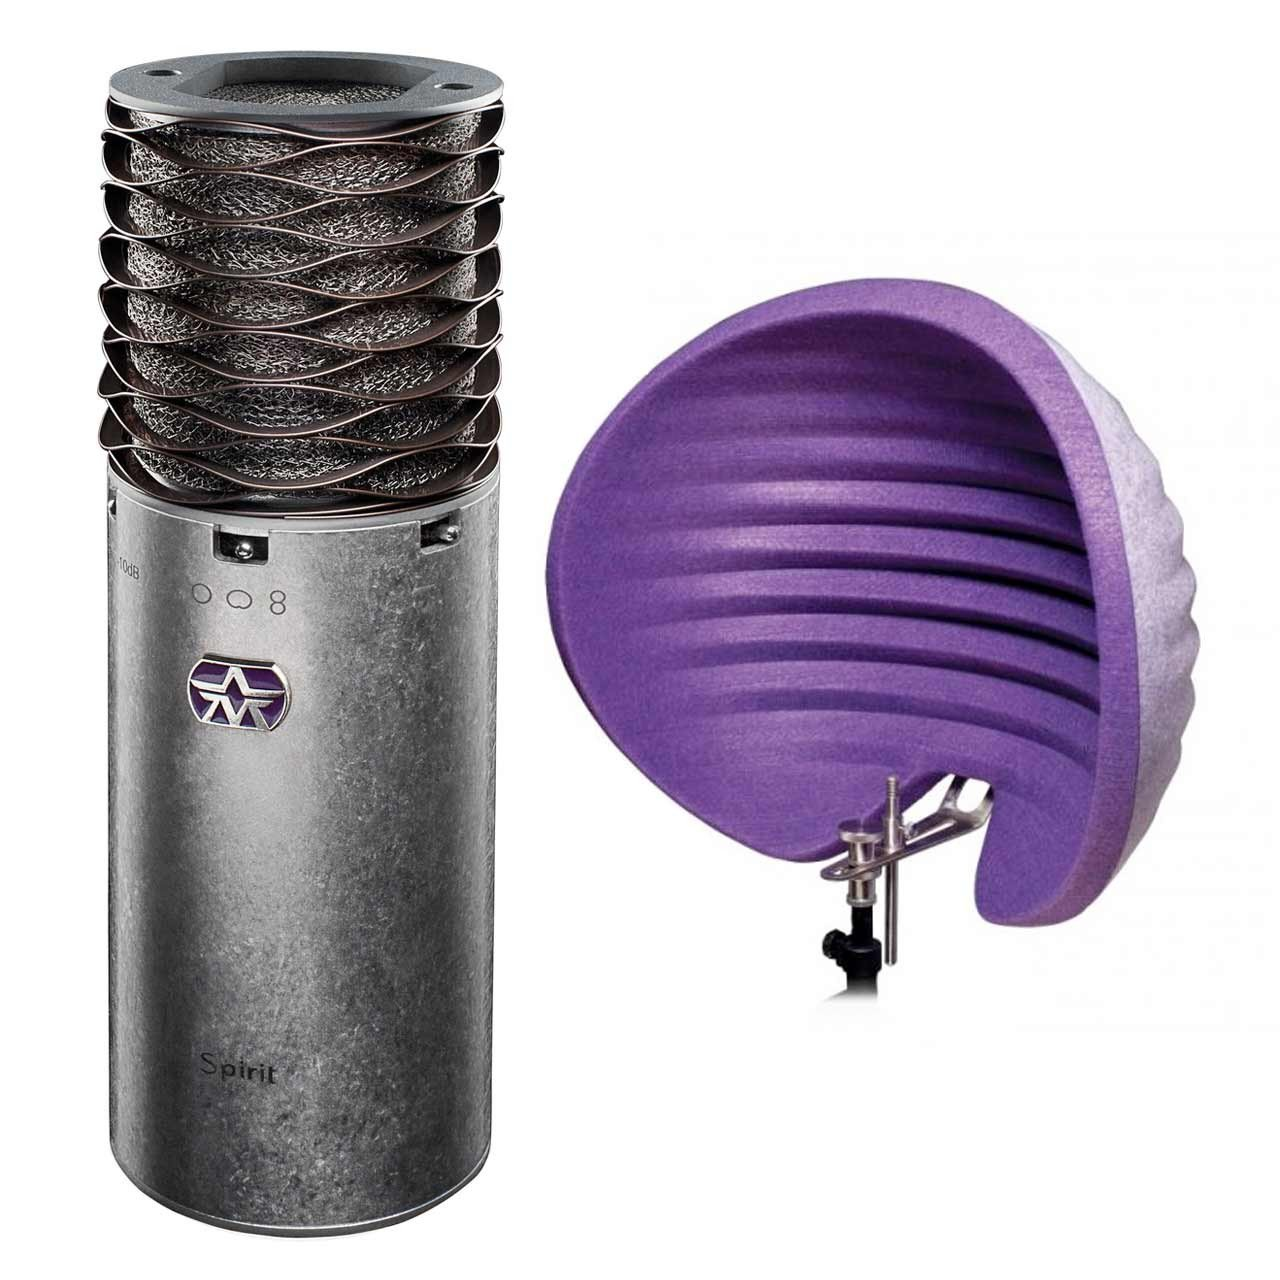 Condenser Microphones - Aston Spirit Multi-Pattern Condenser Microphone + Halo Reflection Filter